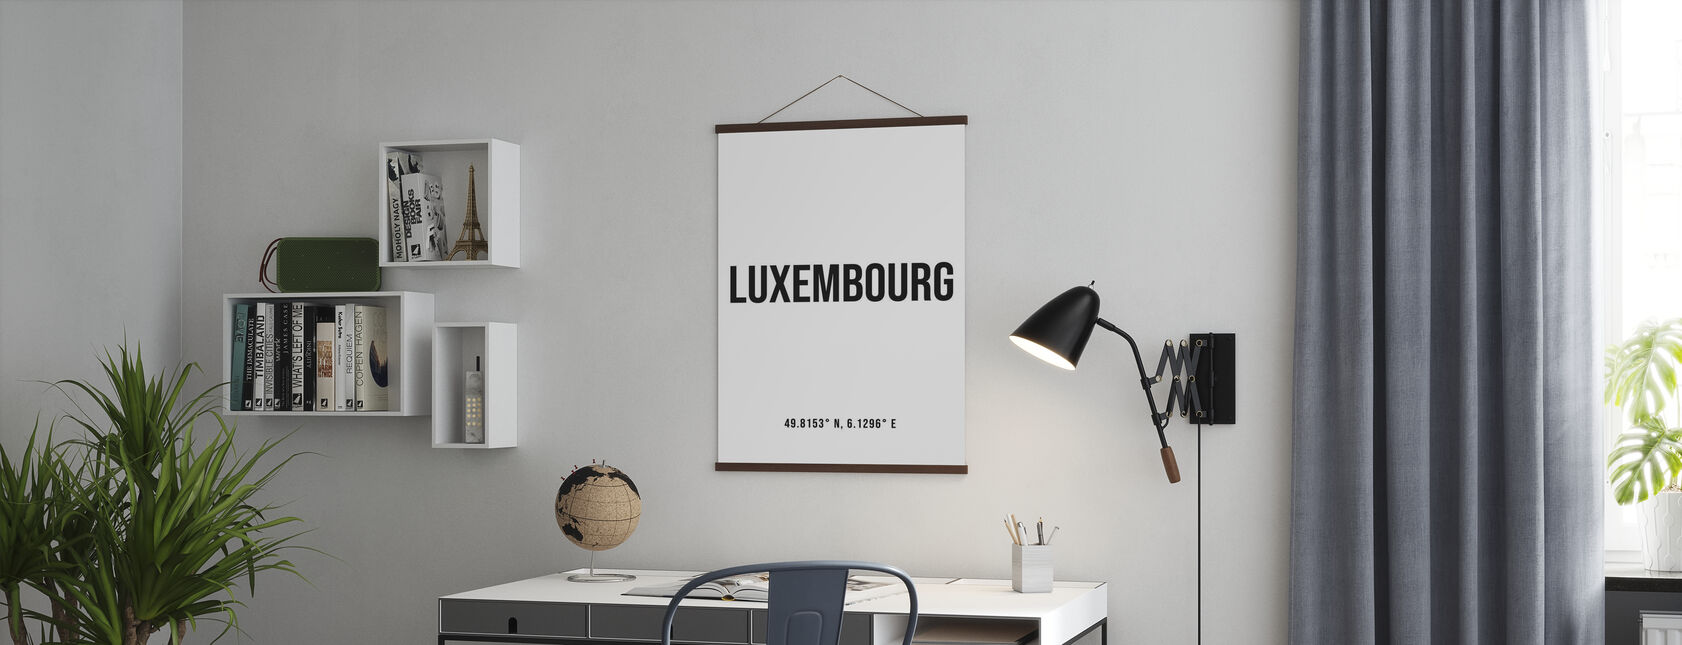 Luxembourg Coordinates - Poster - Office